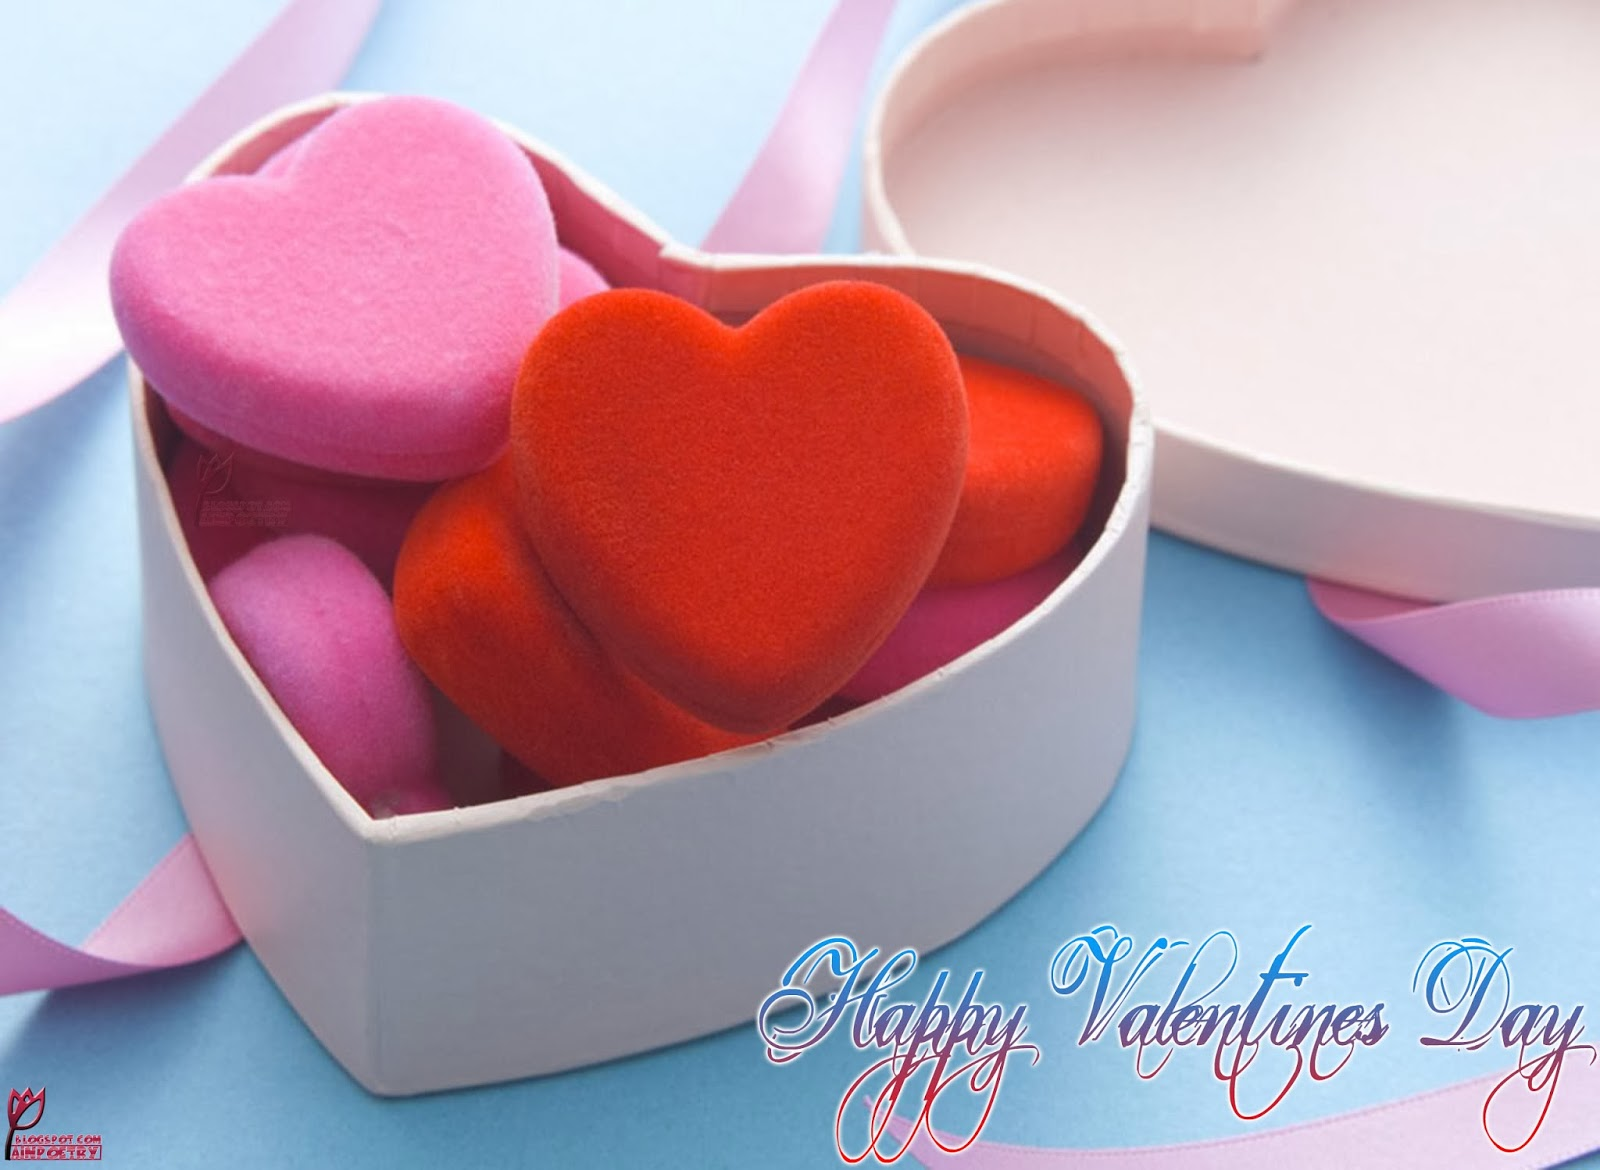 Happy Valentines Day Wishes Wallpaper With Hearts Photo Image HD